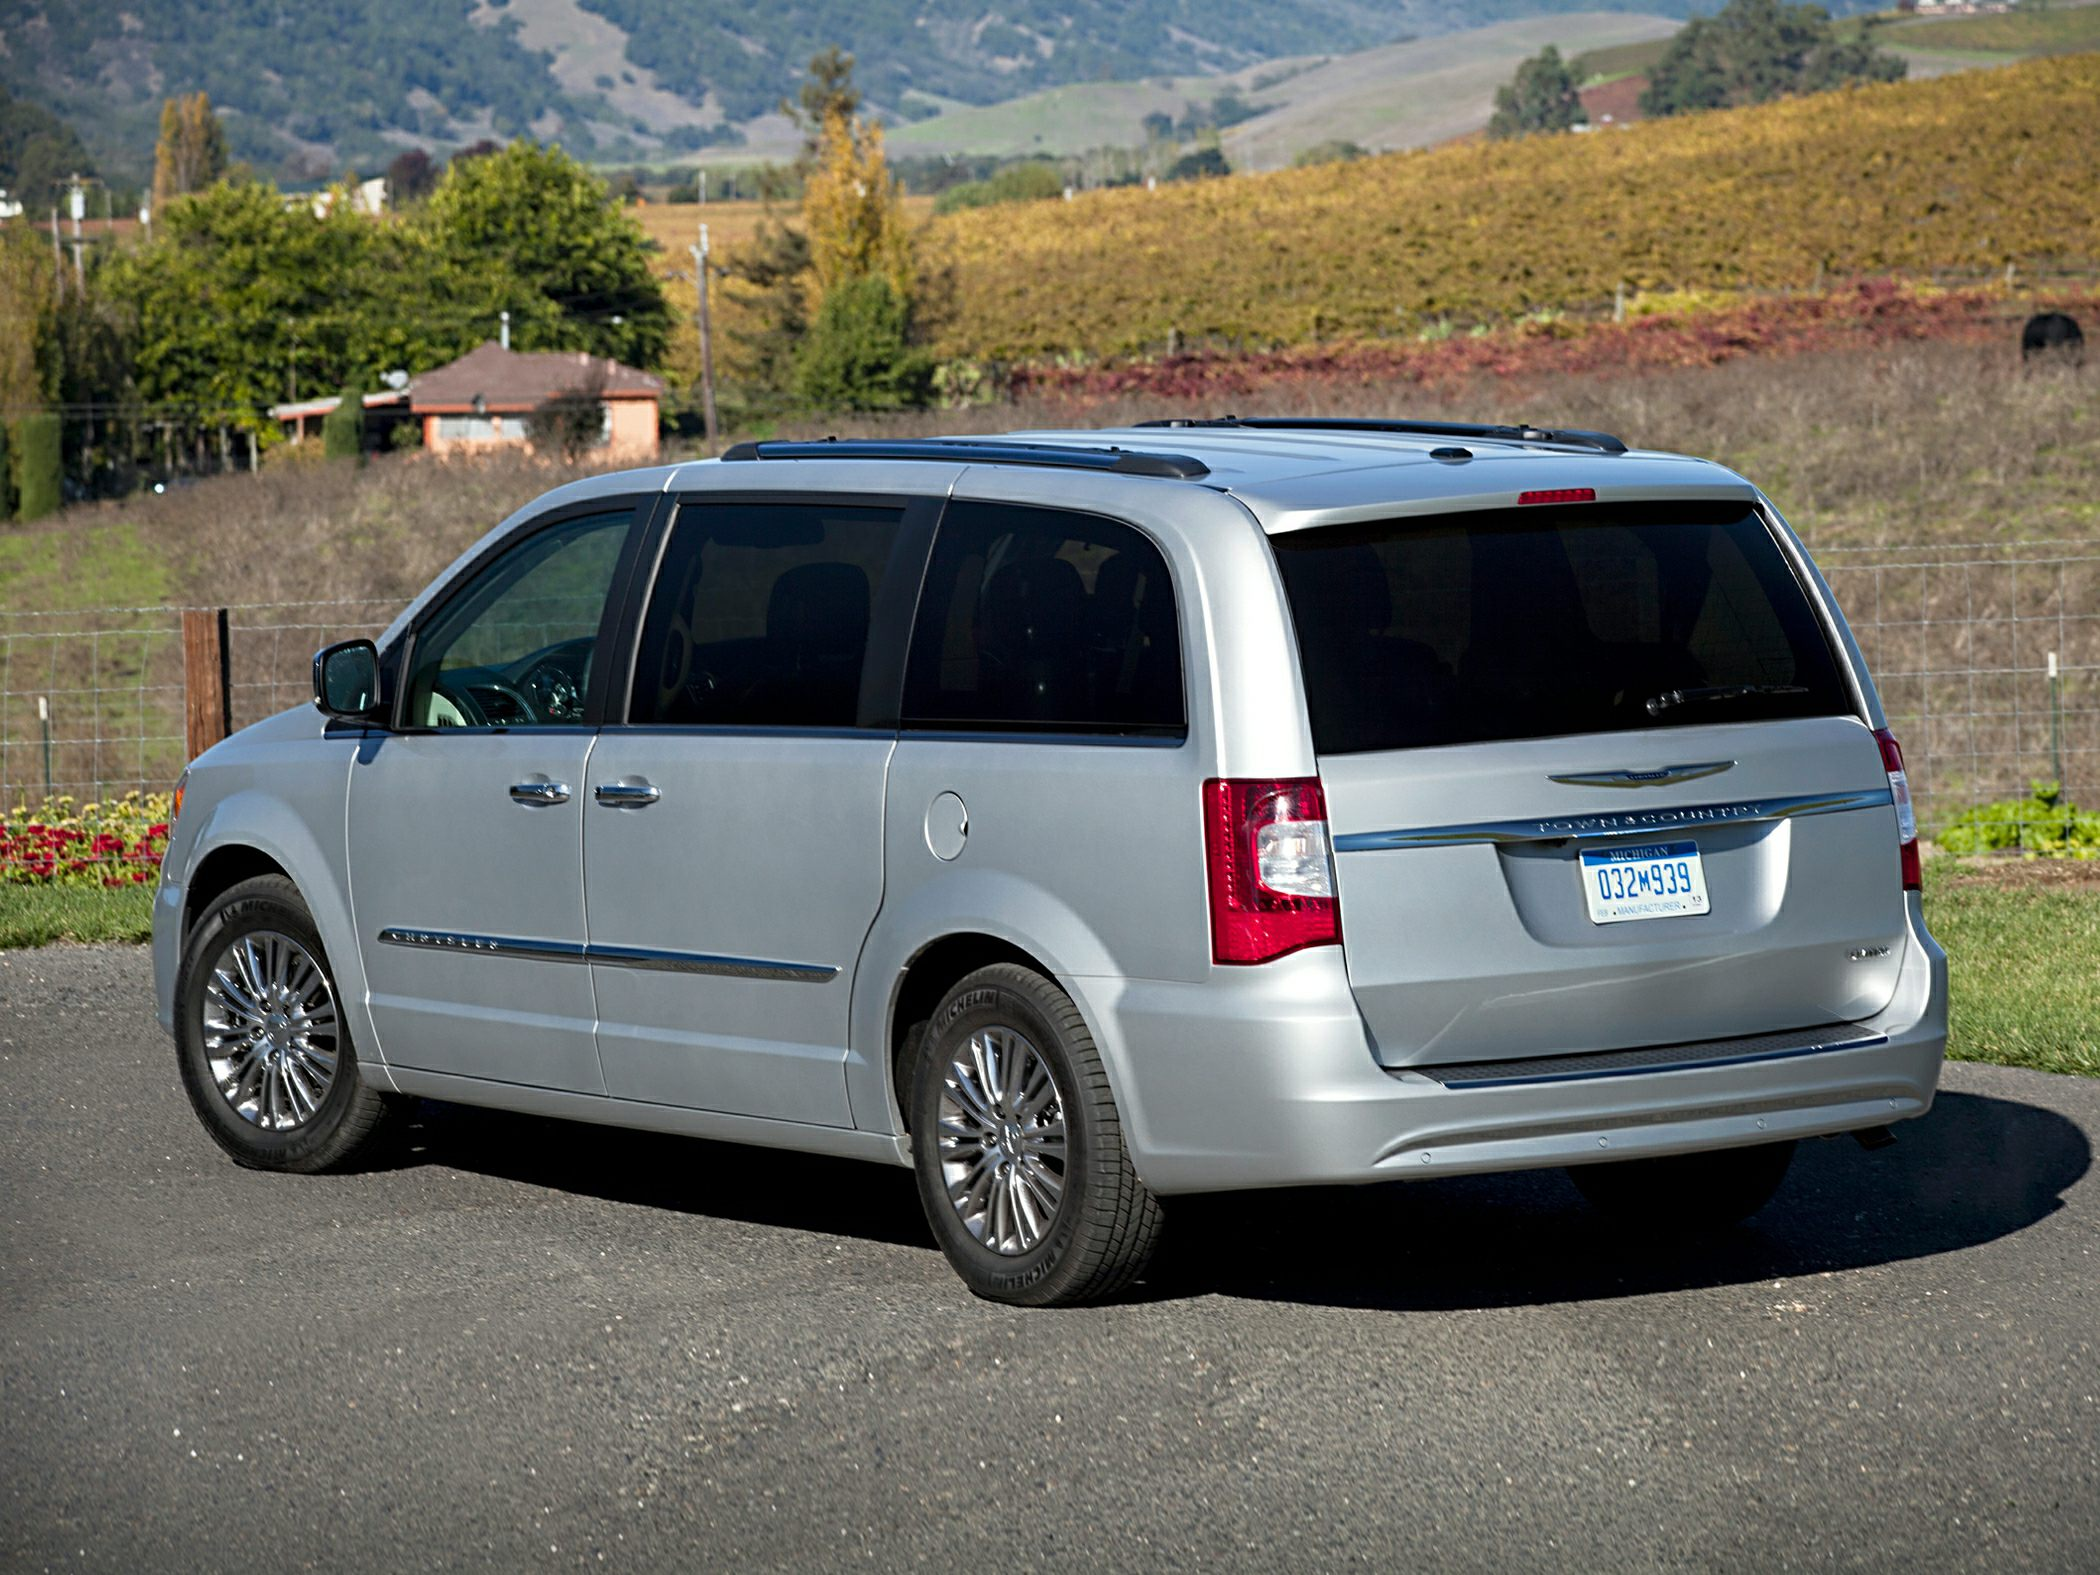 2019 Chrysler Town and Country photo - 4